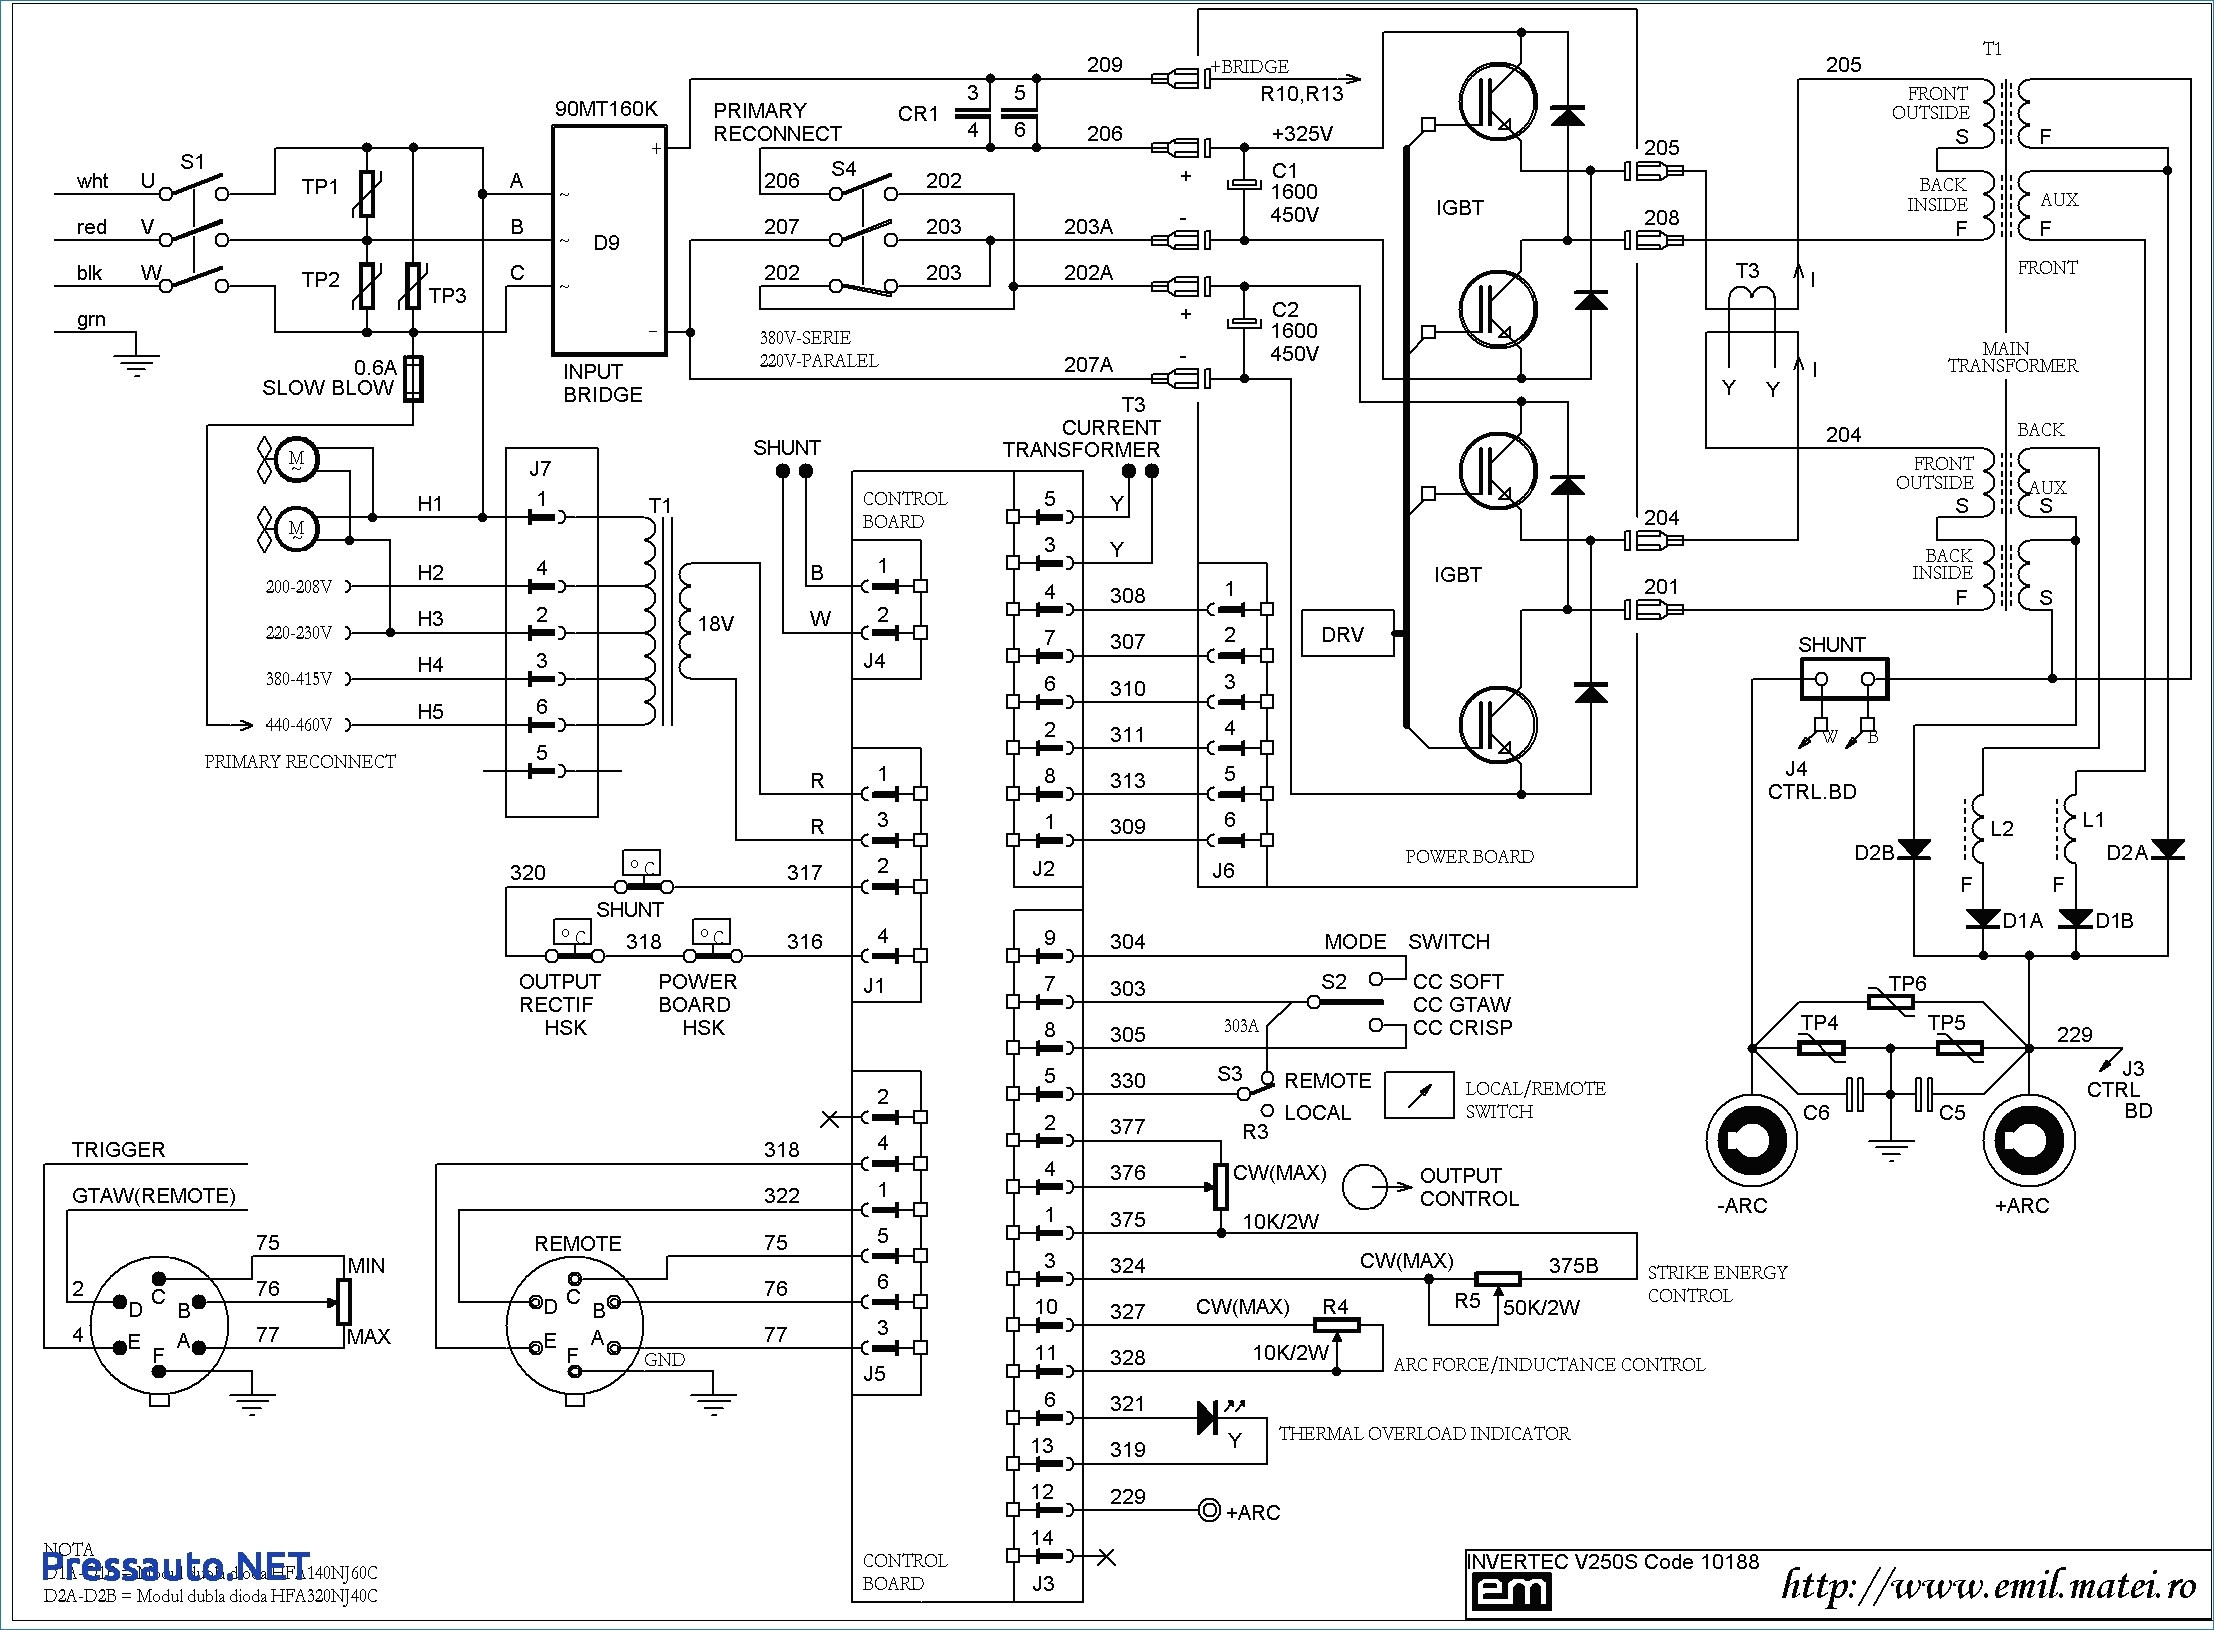 Ottawa Yard Truck Wiring Diagram - Ottawa Trucks Wiring Diagrams 1999 Electrical Drawing Wiring Diagram U2022 Rh Circuitdiagramlabs today Ottawa Yard Truck 13p